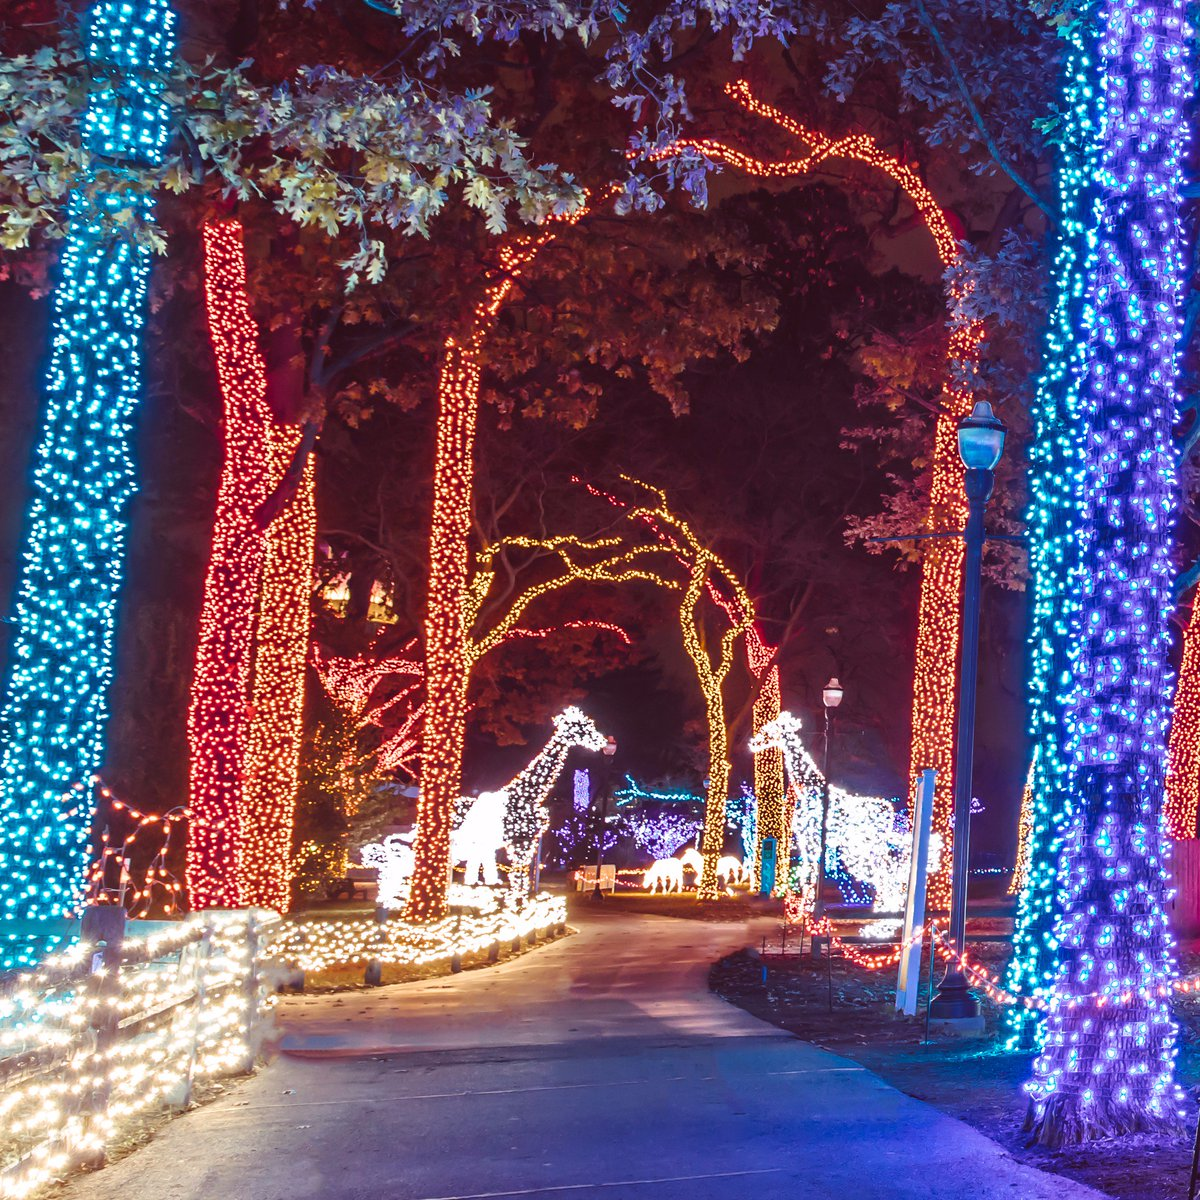 Wild Lights at the Detroit Zoo photo courtesy Jessica Strachan